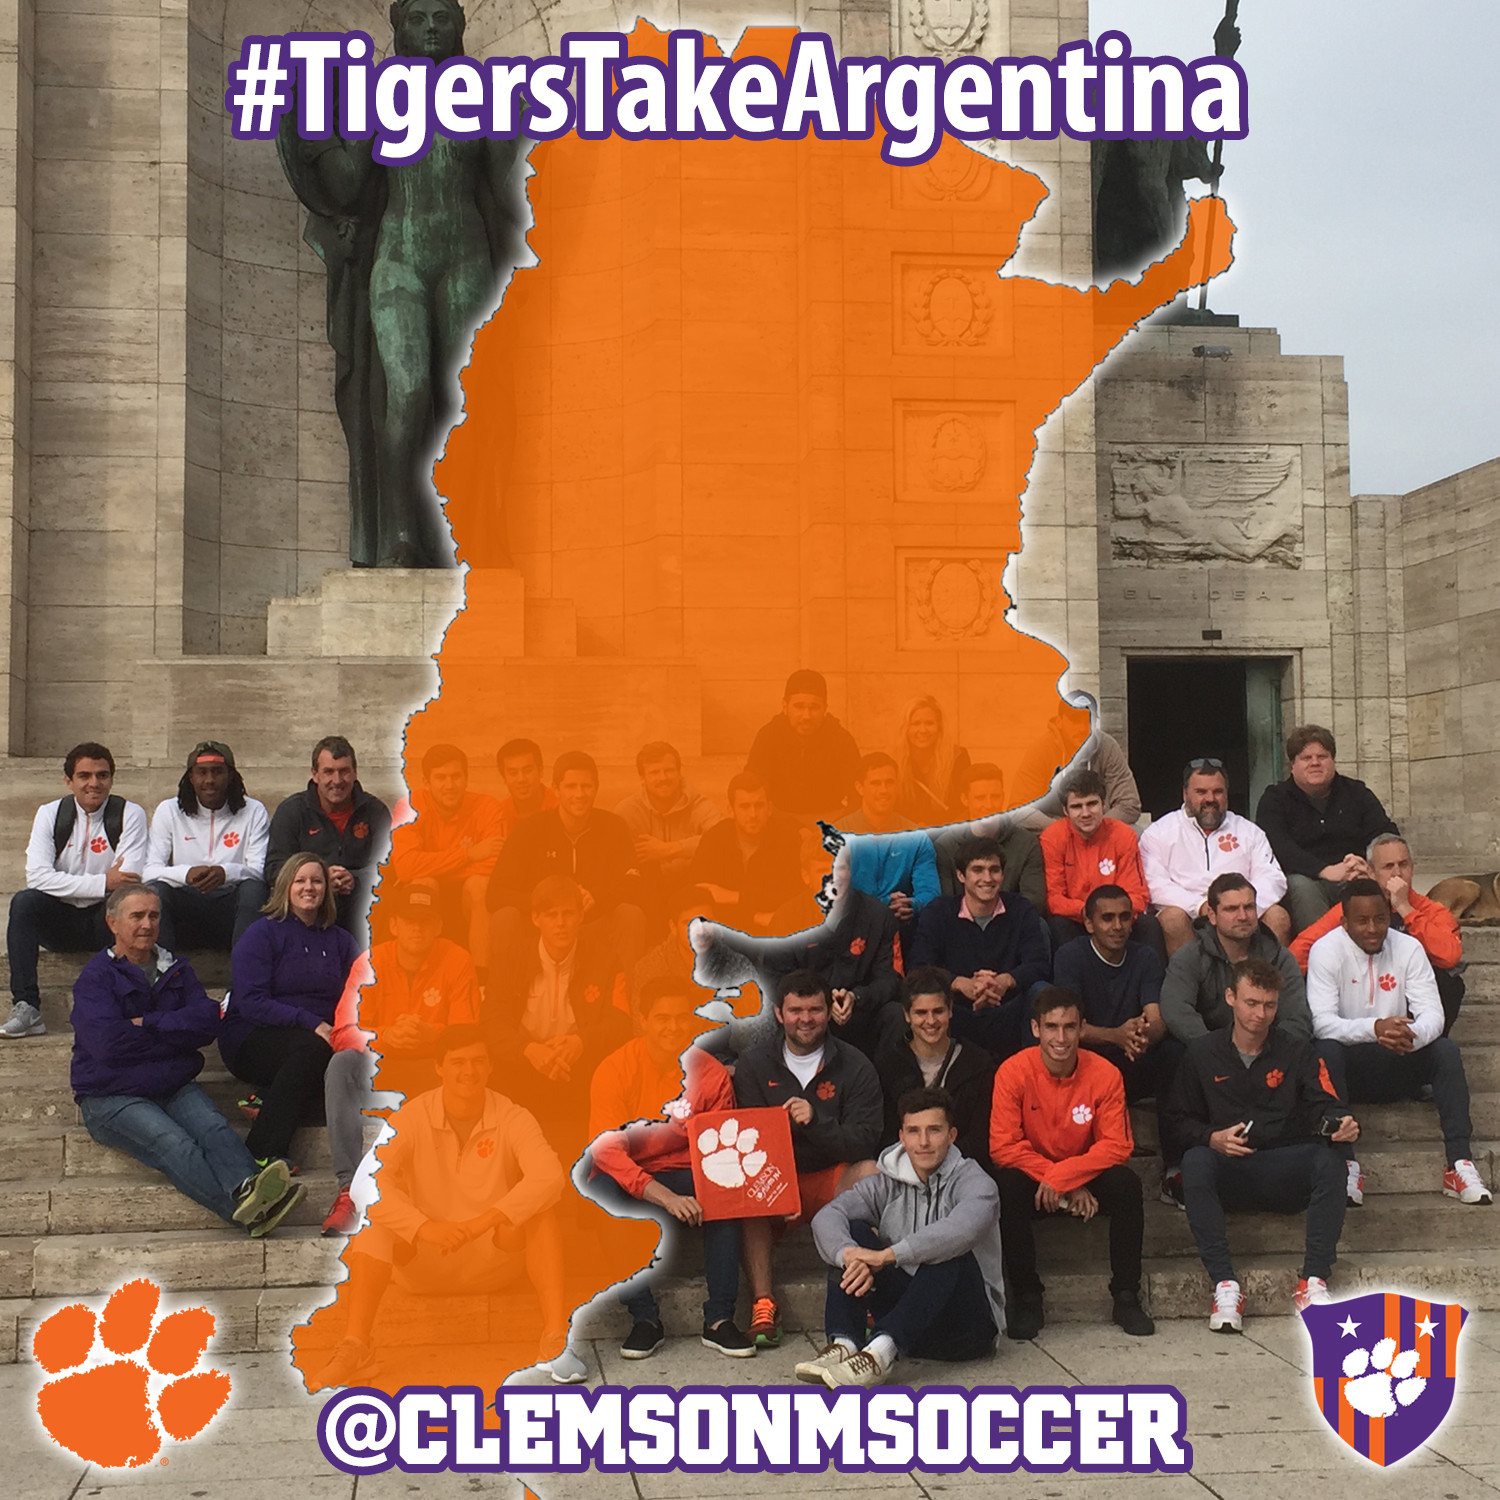 Reflections from Mike Noonan, #TigersTakeArgentina